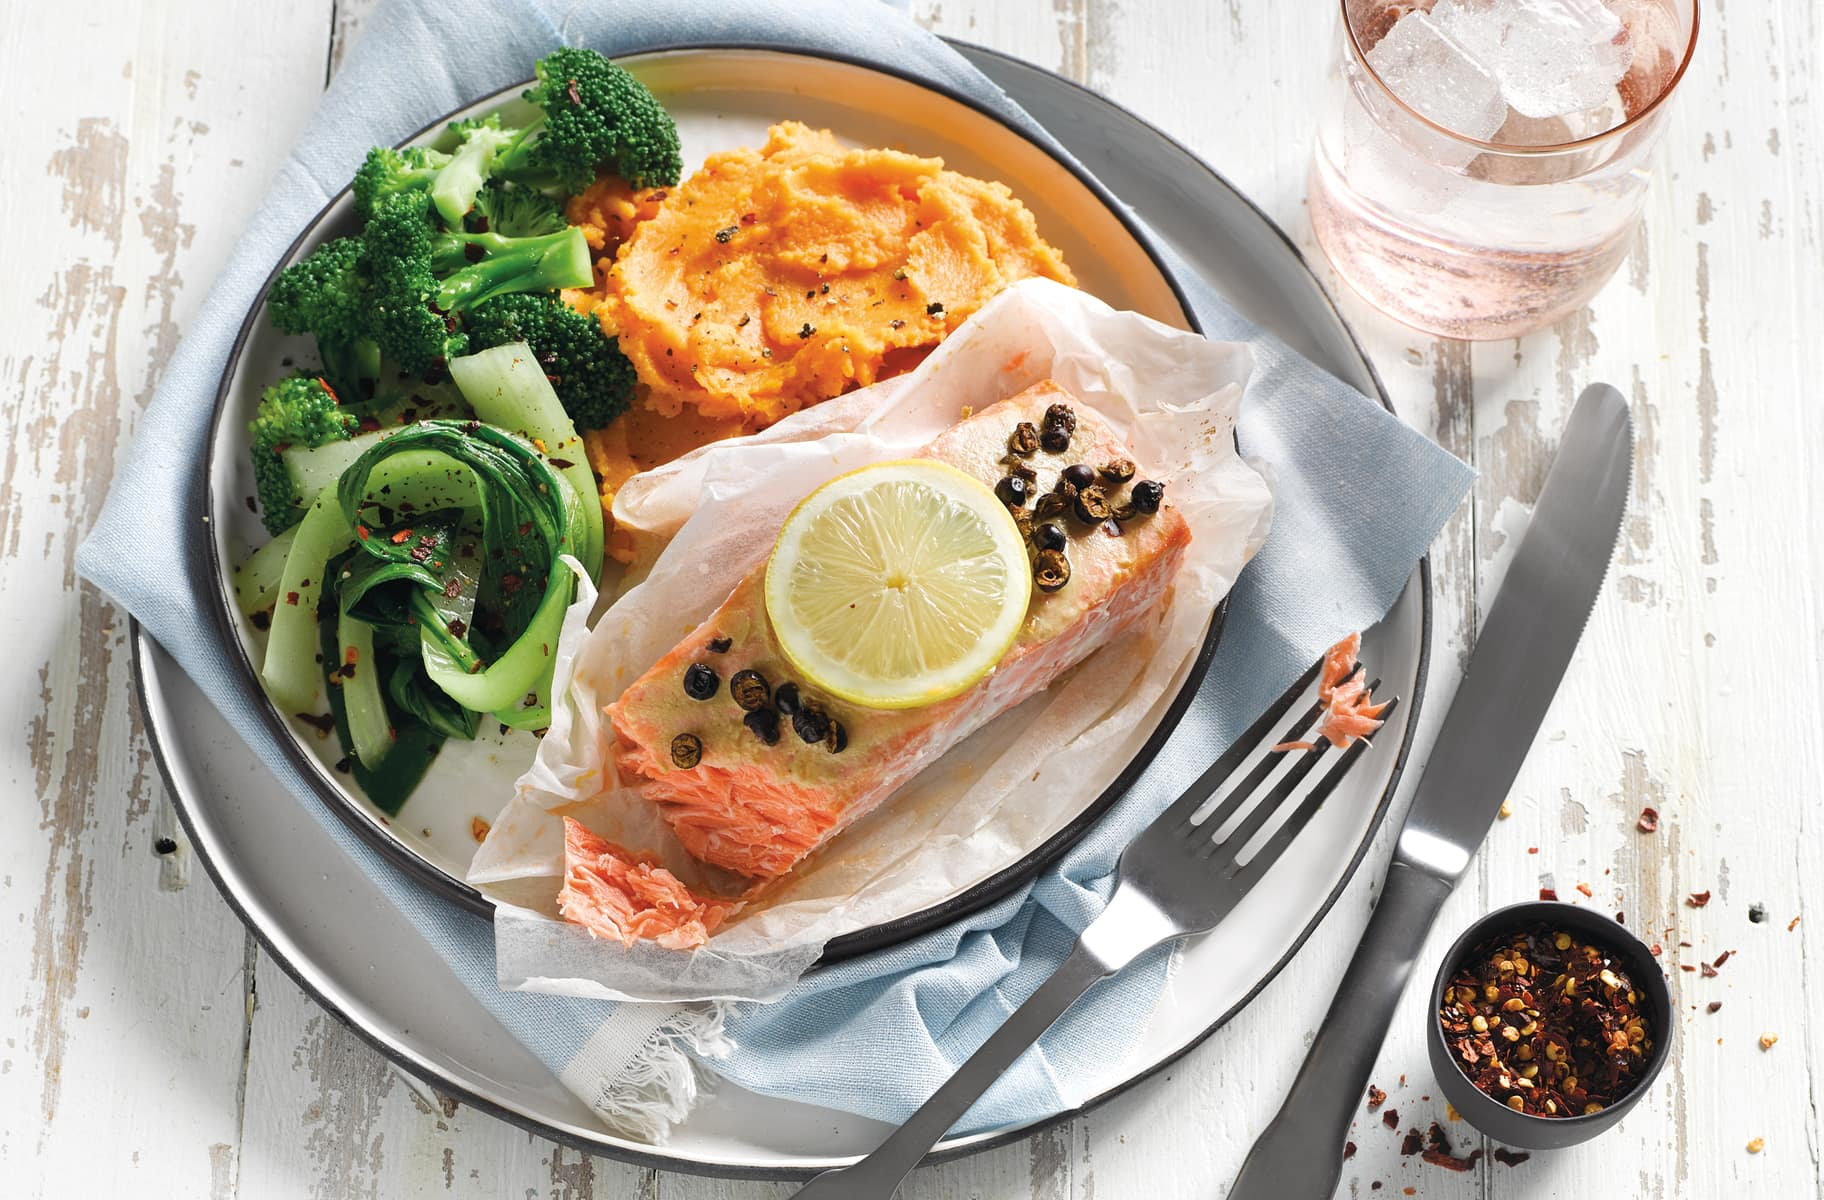 Meals for one recipe collections healthy food guide mustard and juniper berry salmon with kumara mash forumfinder Choice Image